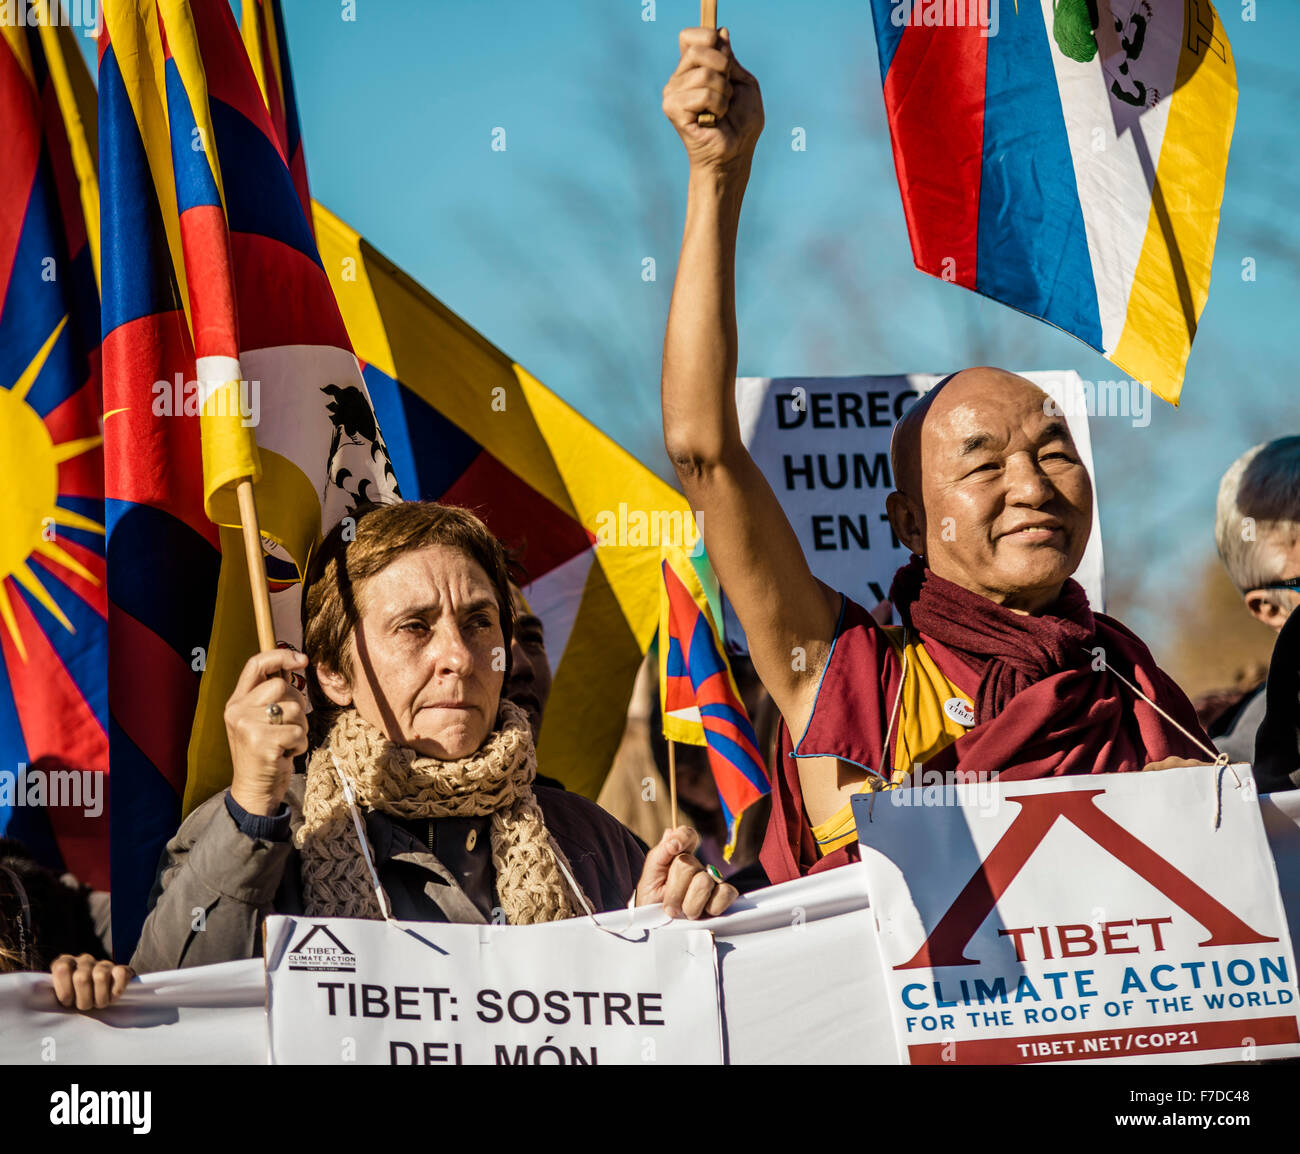 Barcelona, Spain. 29th November, 2015. THUBTEN WANGCHEN, a Buddhist monk and founder of the 'Casa Tibet' - Stock Image